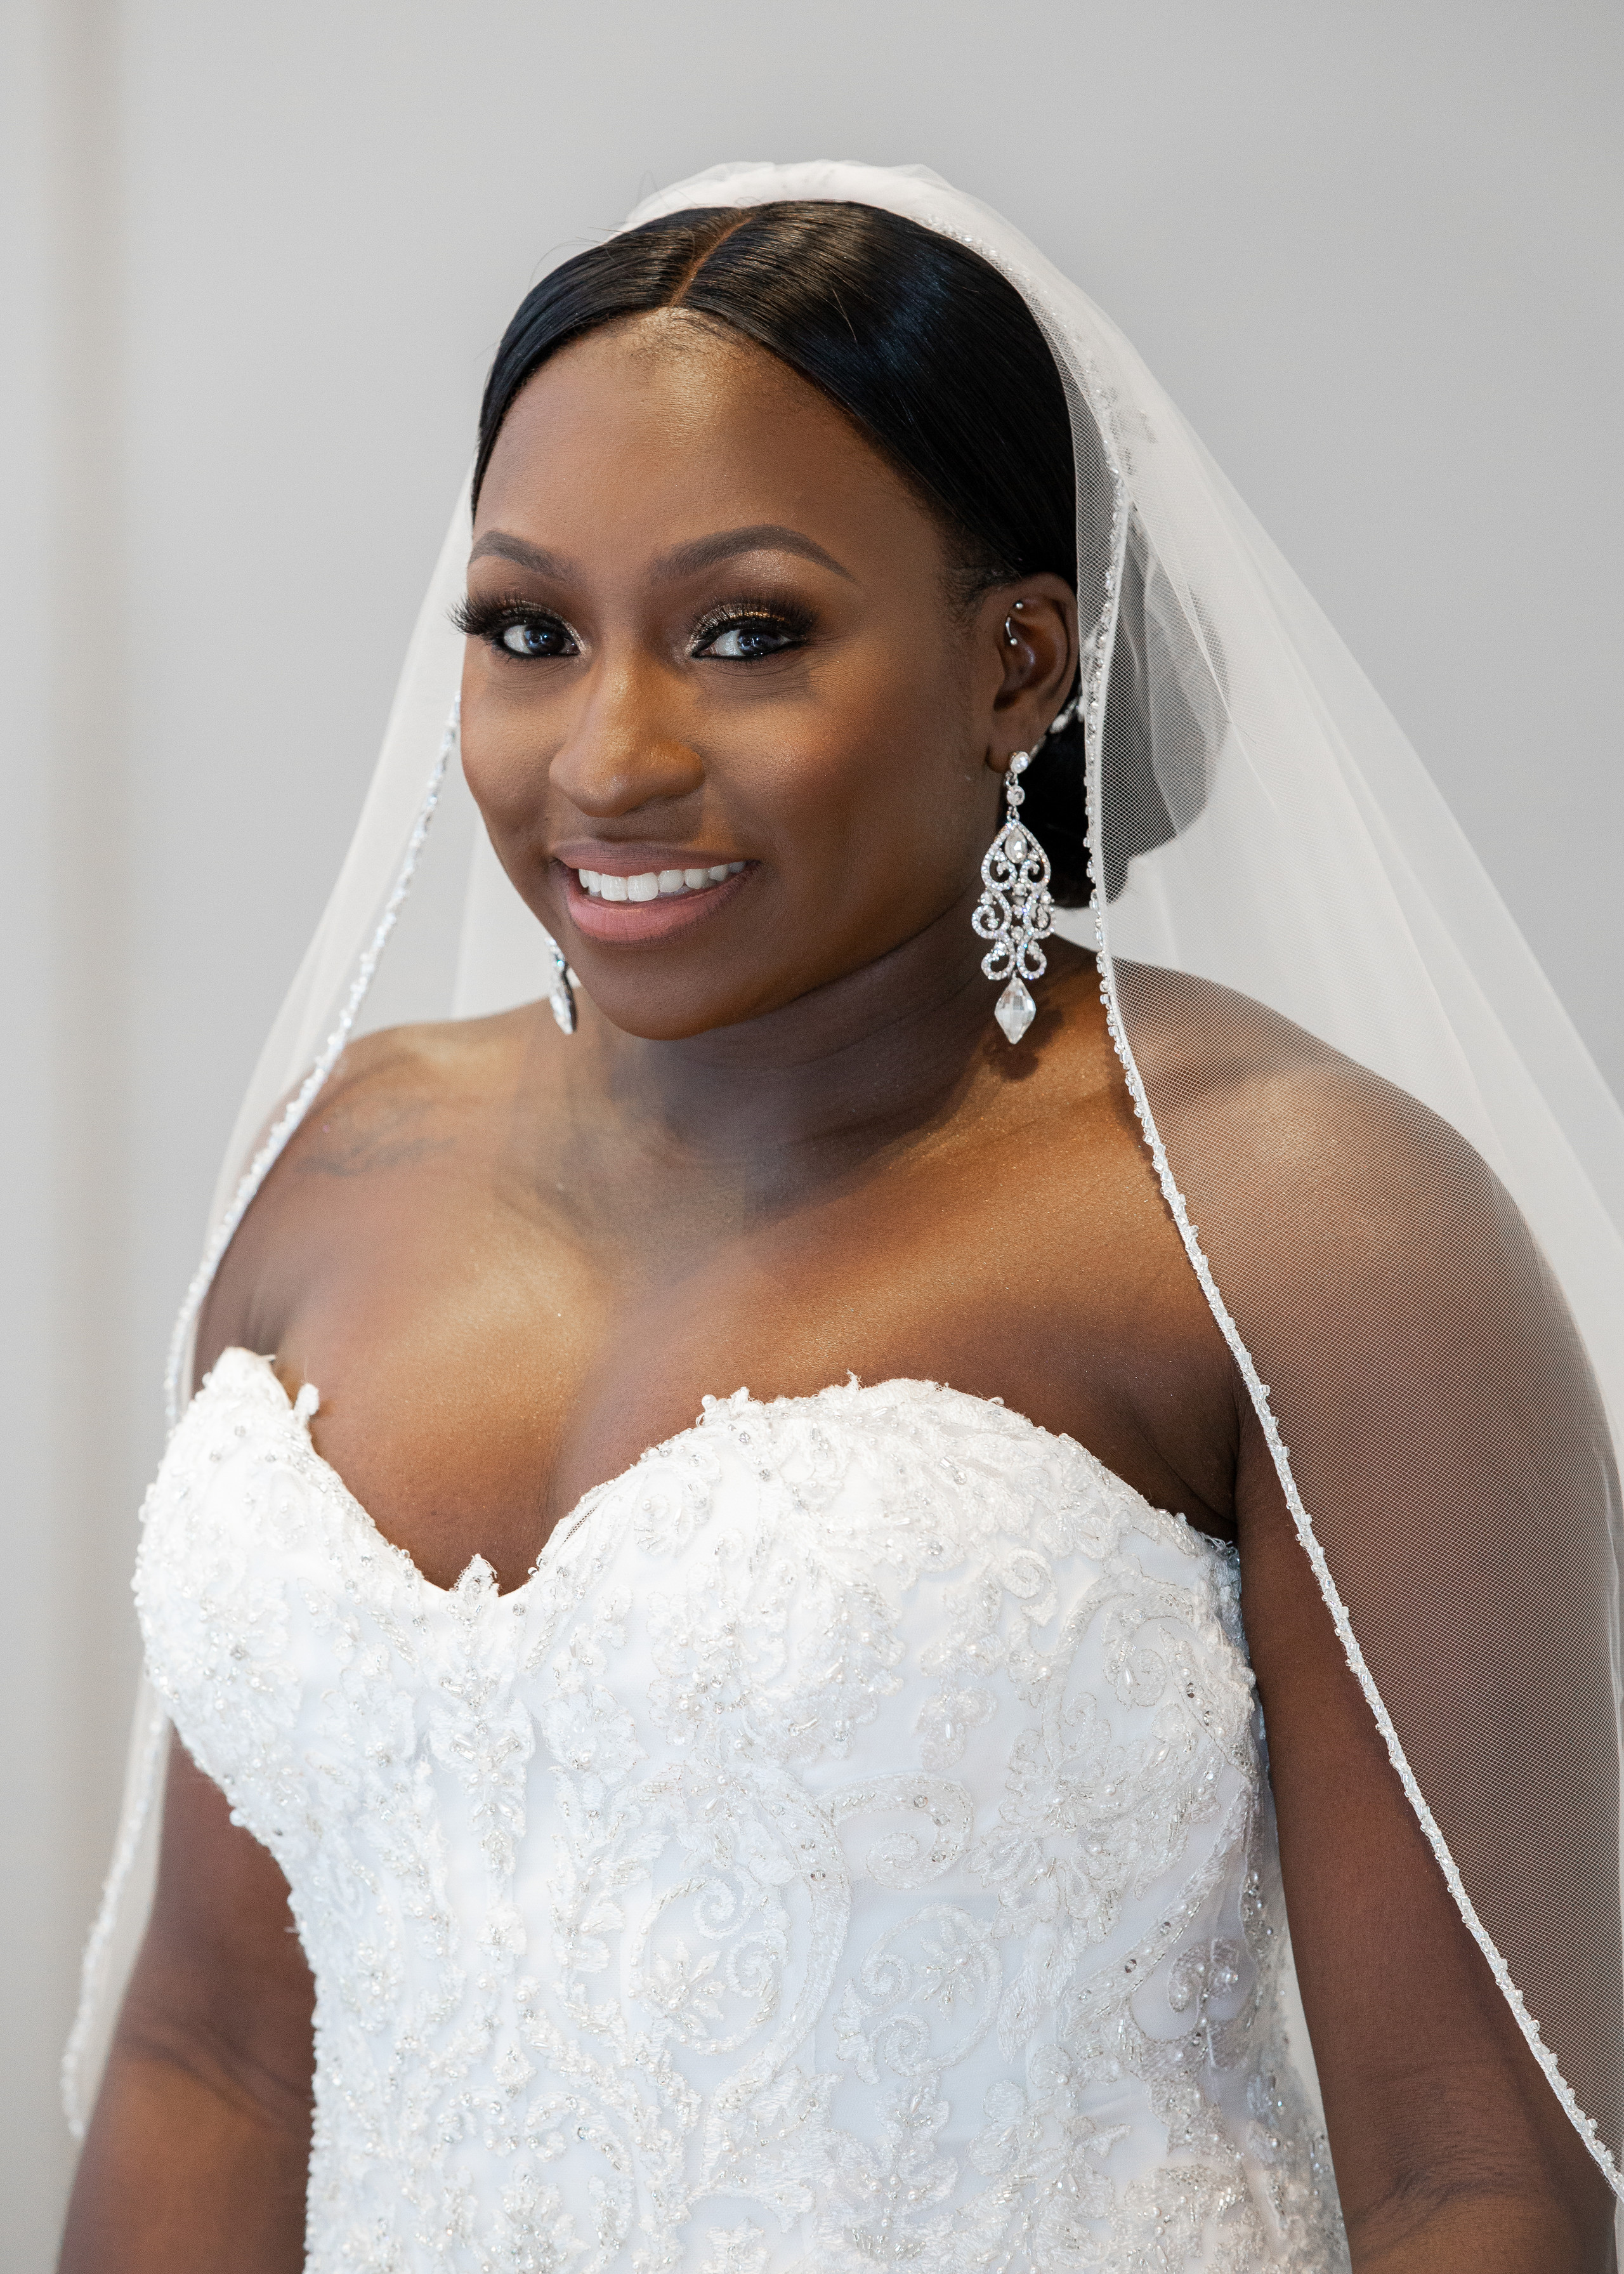 Bridal posing for a portrait showing off her wedding dress, bridal jewelry and wedding day makeup before the wedding ceremony at the Hilton Main in Norfolk, Virginia.